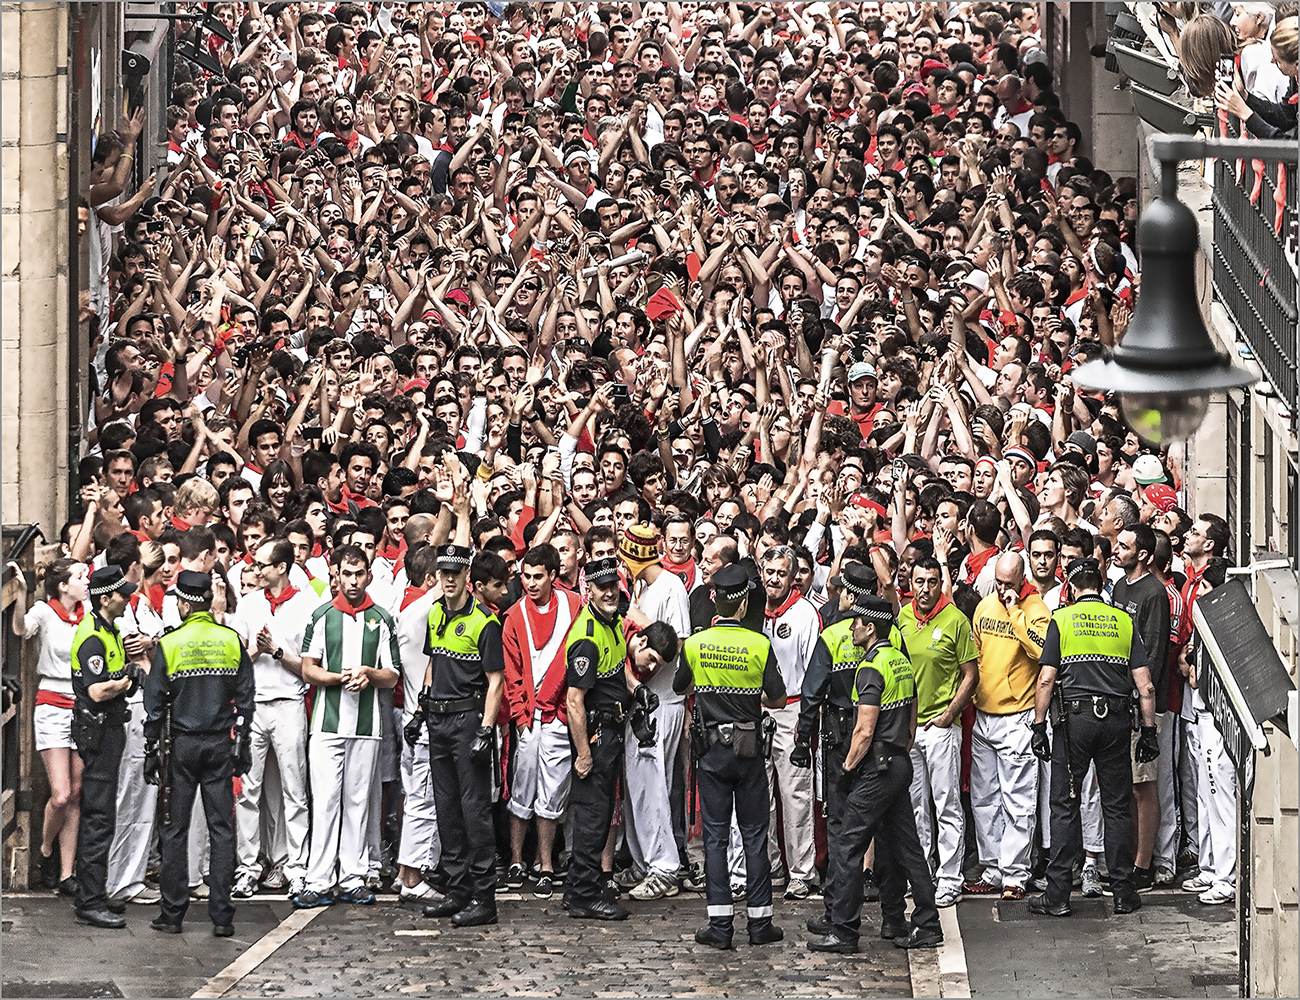 Sanfermines_Waiting for the bulls, Spain